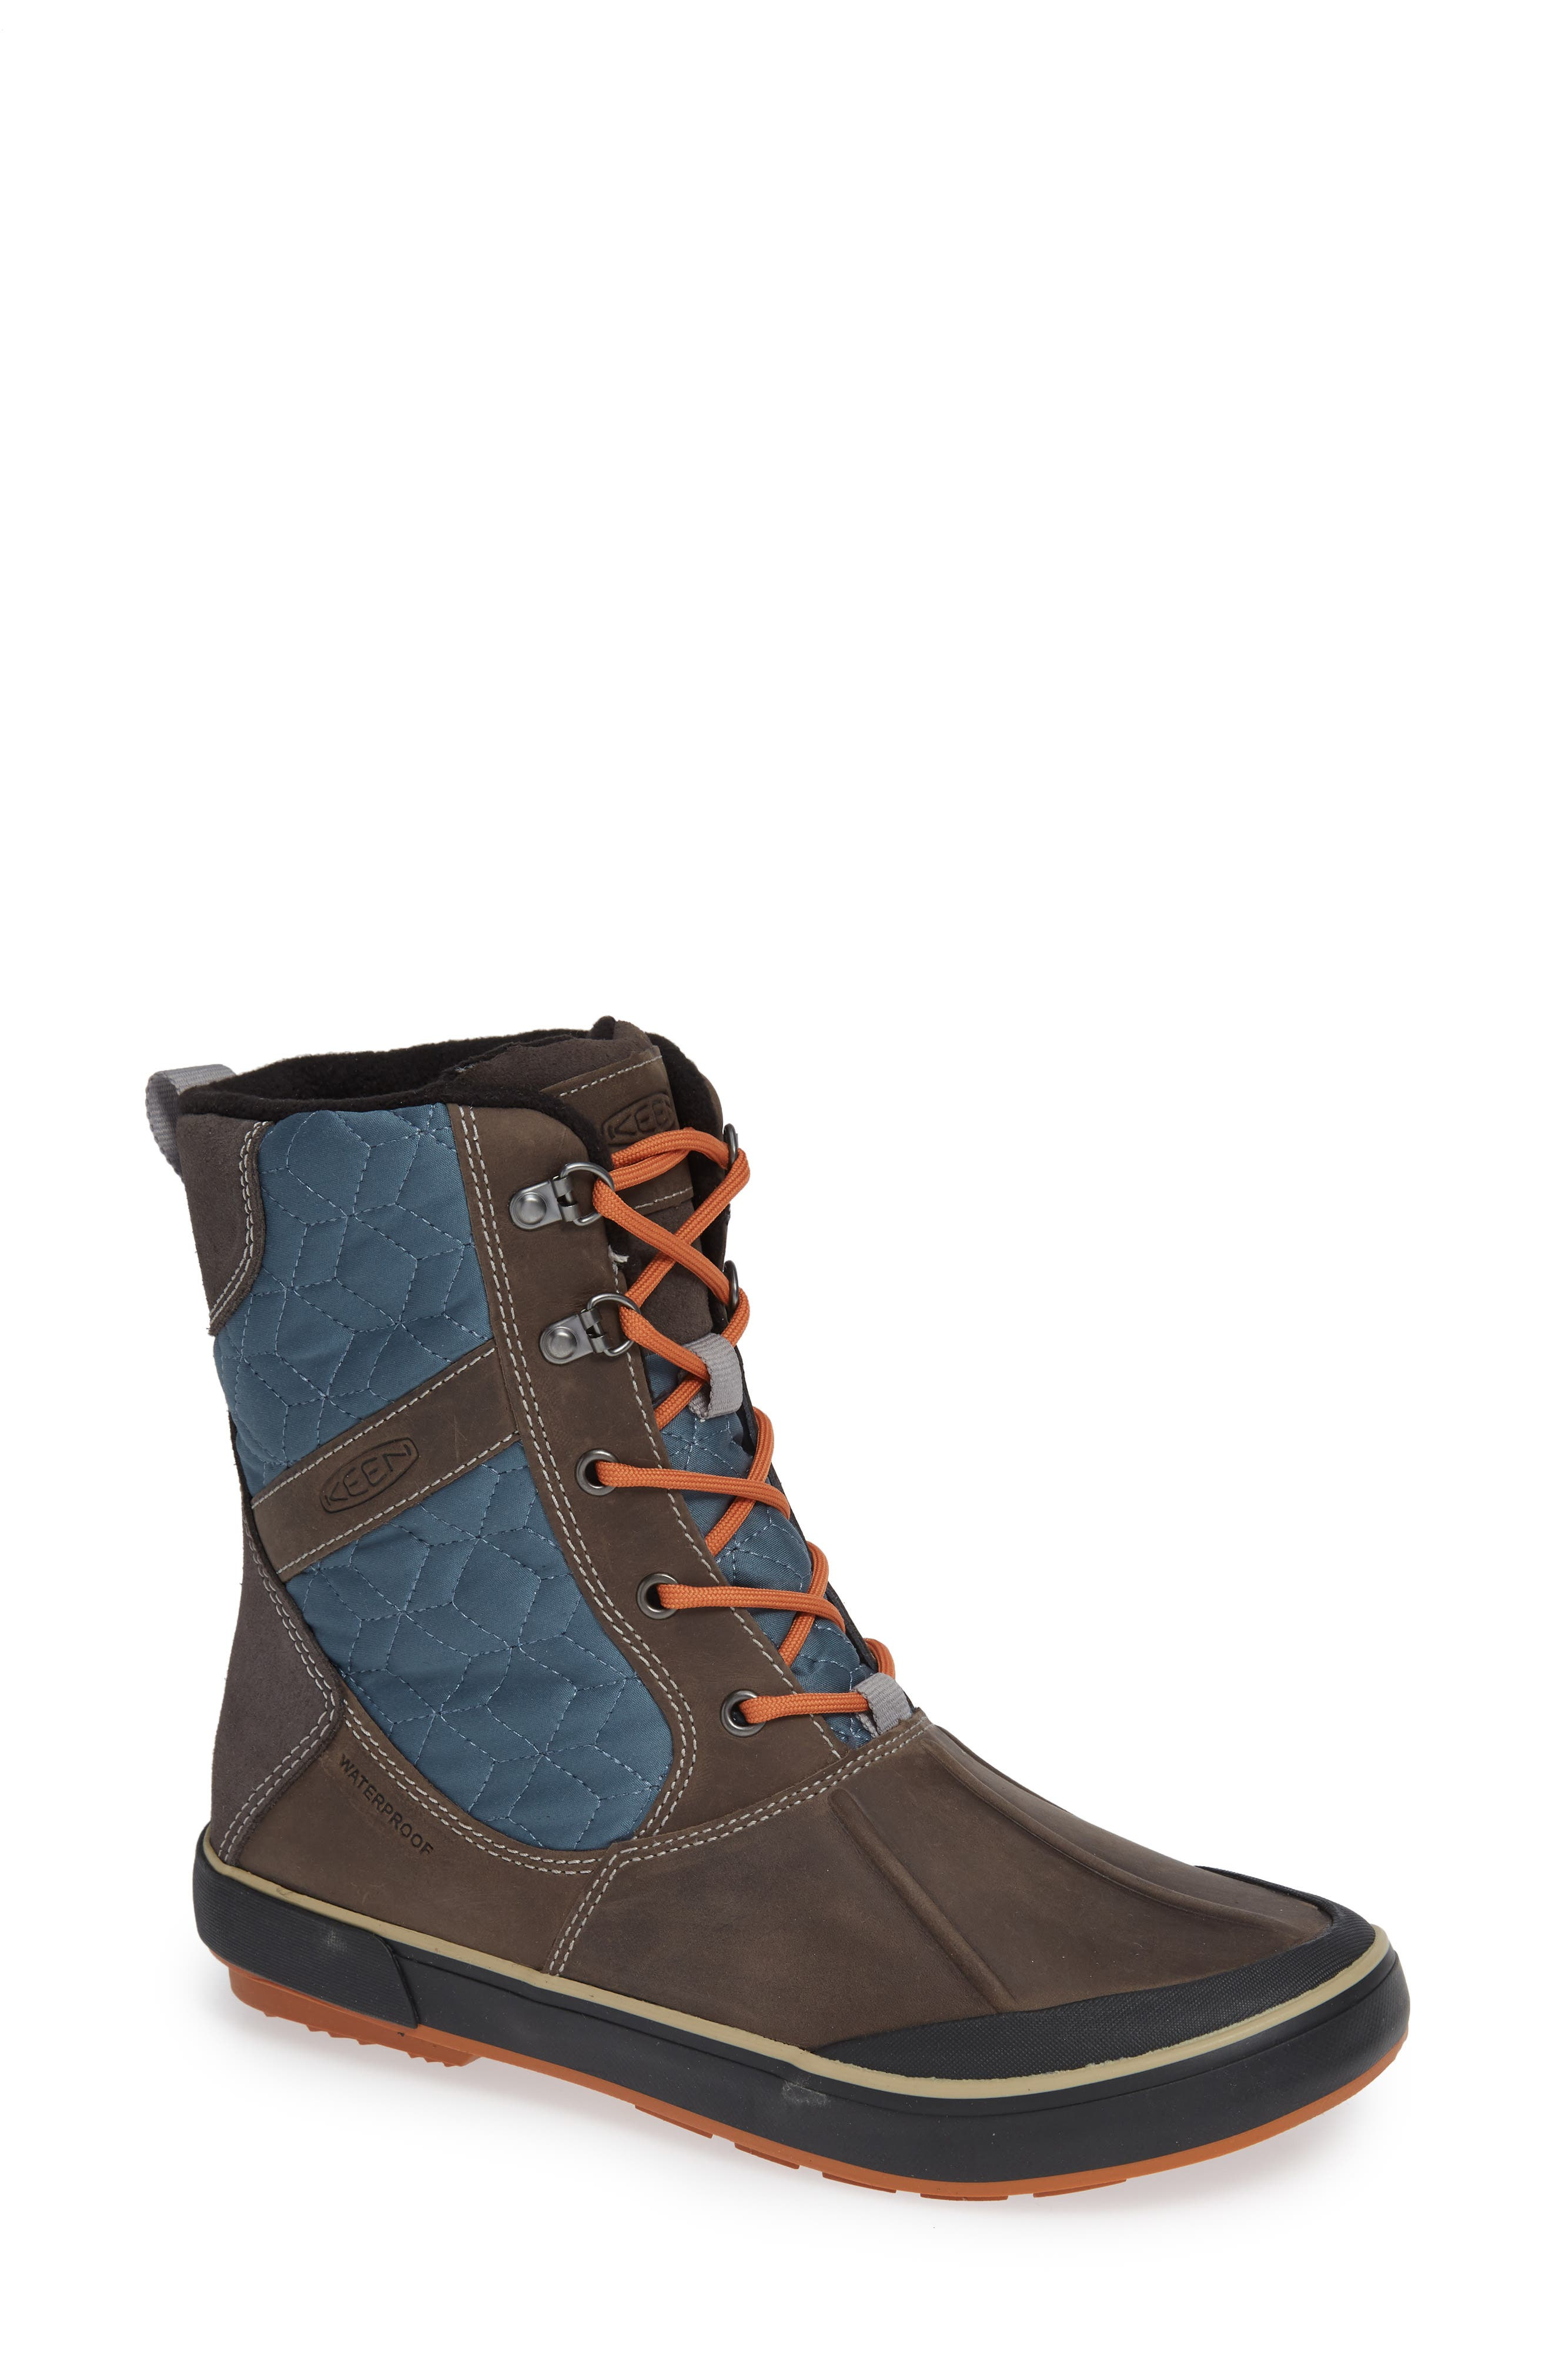 Keen Elsa Ii Waterproof Winter Bootie- Grey